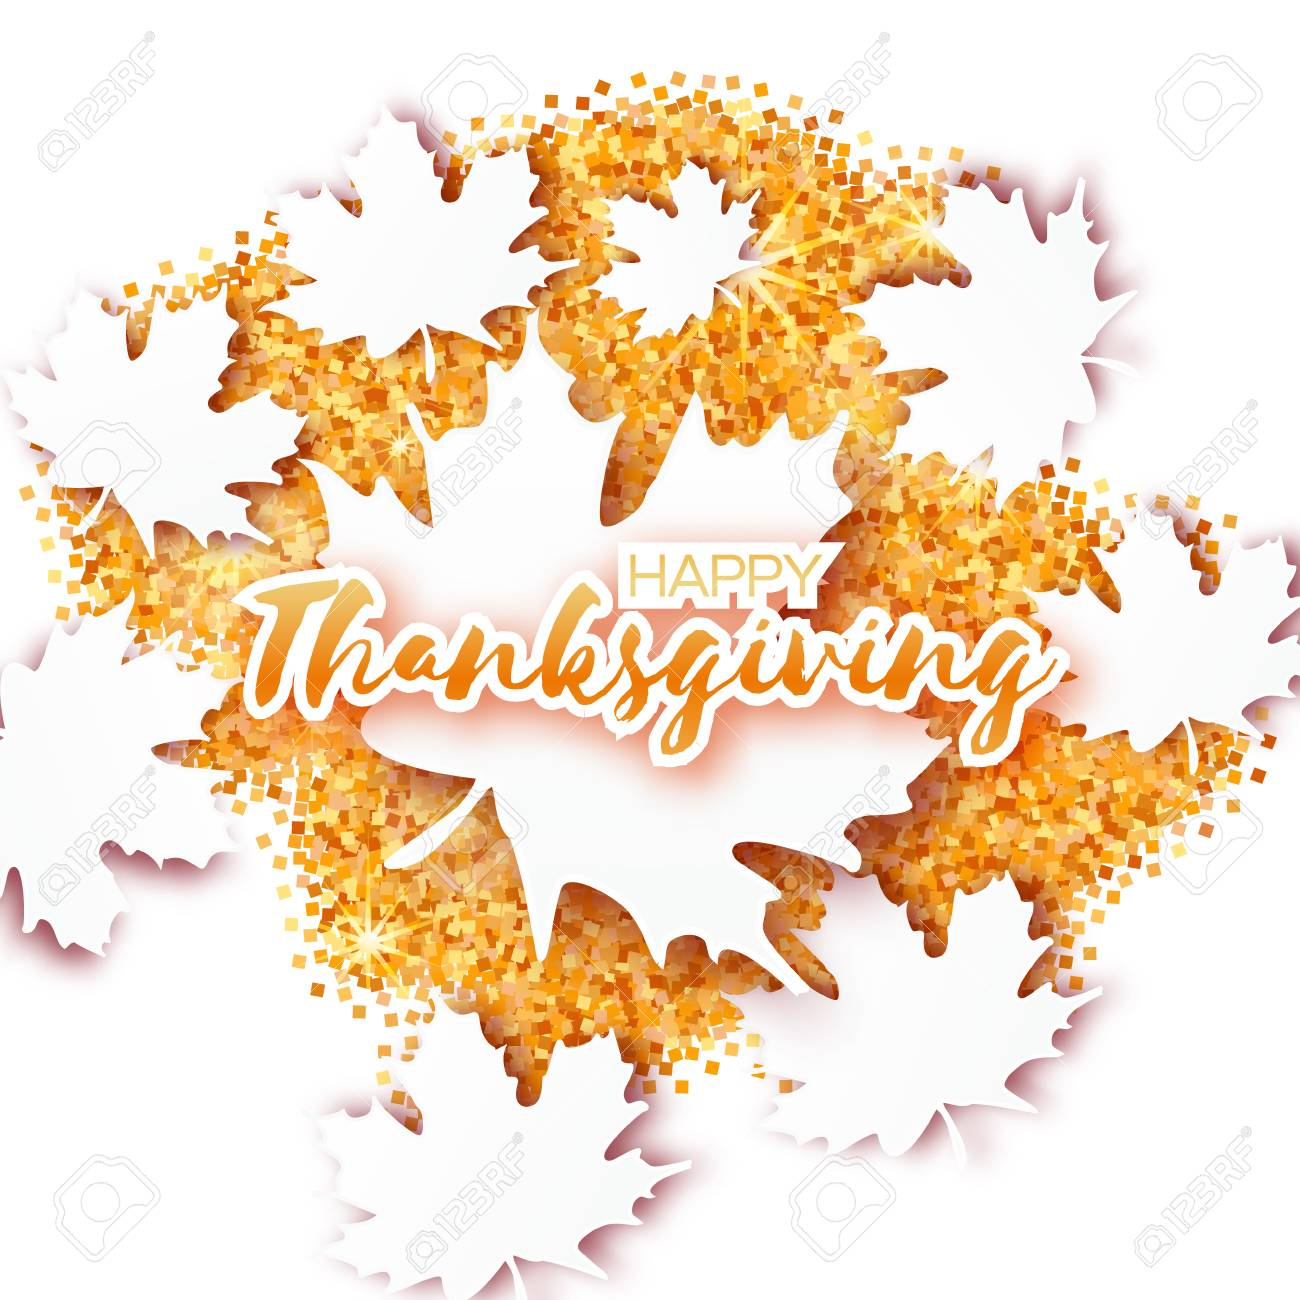 Happy thanksgiving day greeting card with origami beautiful happy thanksgiving day greeting card with origami beautiful autumn white maple leaves on gold glitter background m4hsunfo